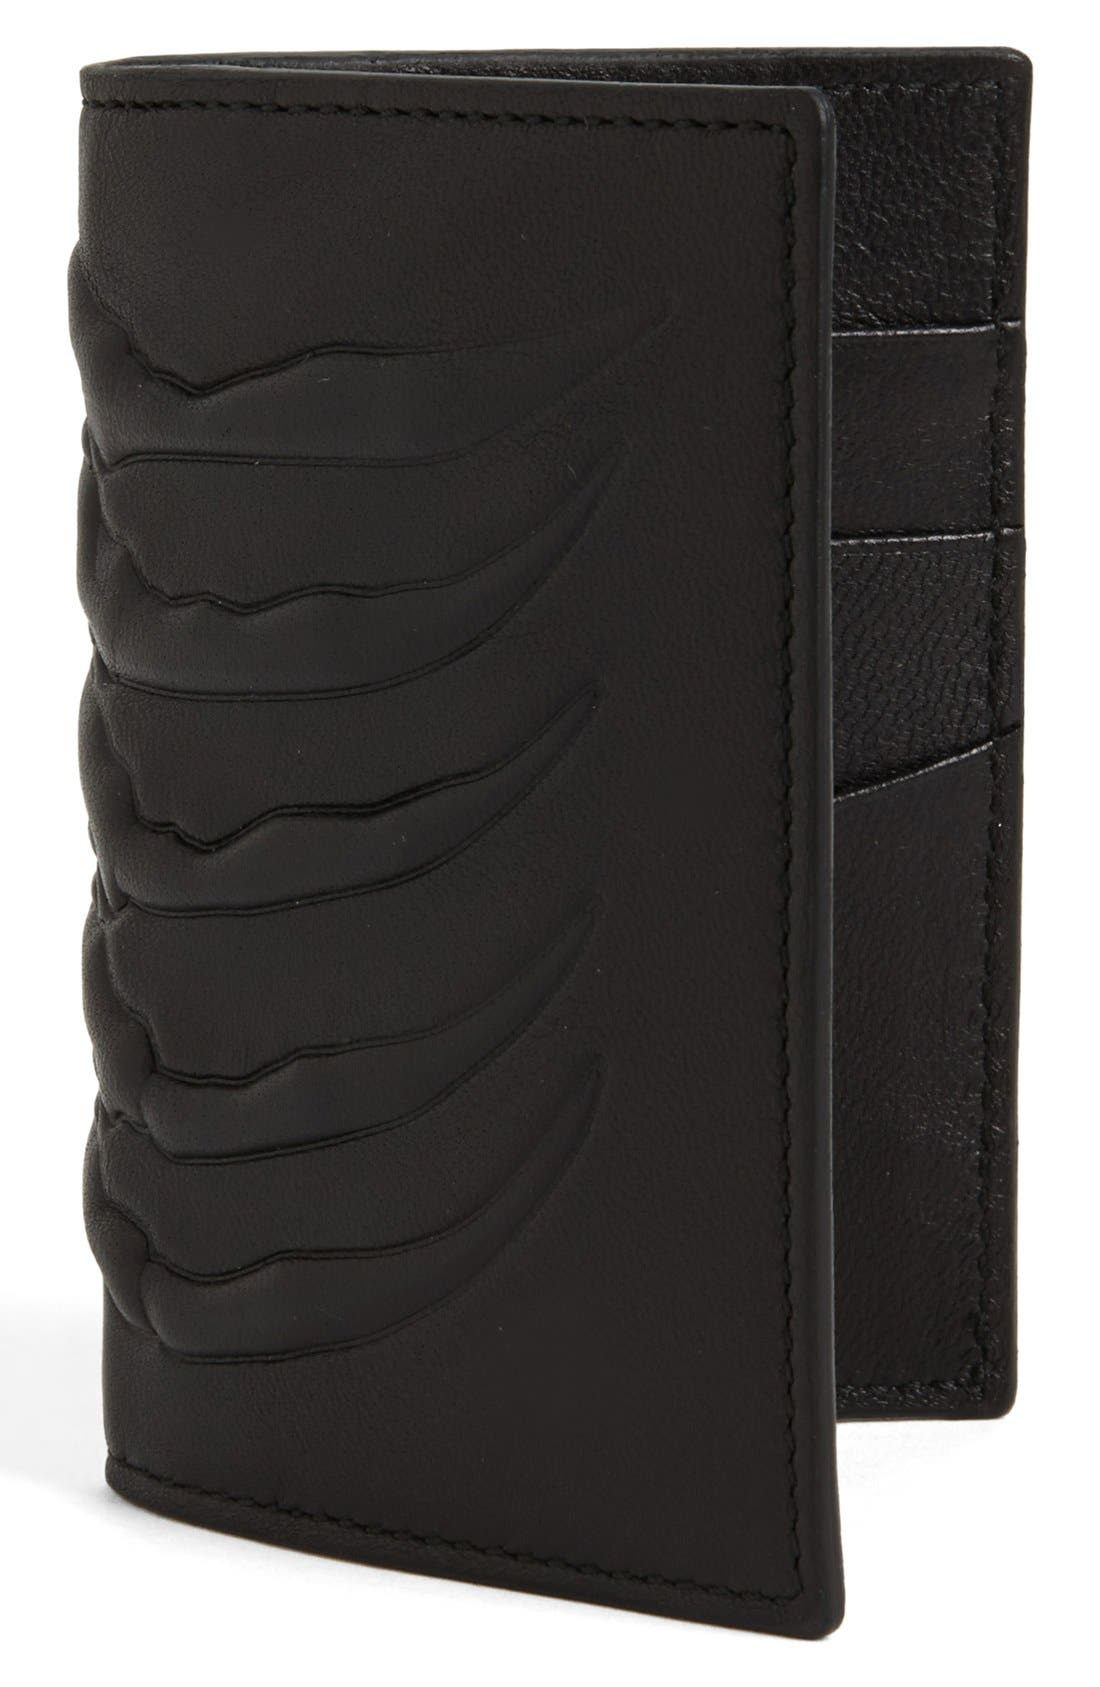 Alternate Image 1 Selected - Alexander McQueen Rib Cage Leather Card Holder